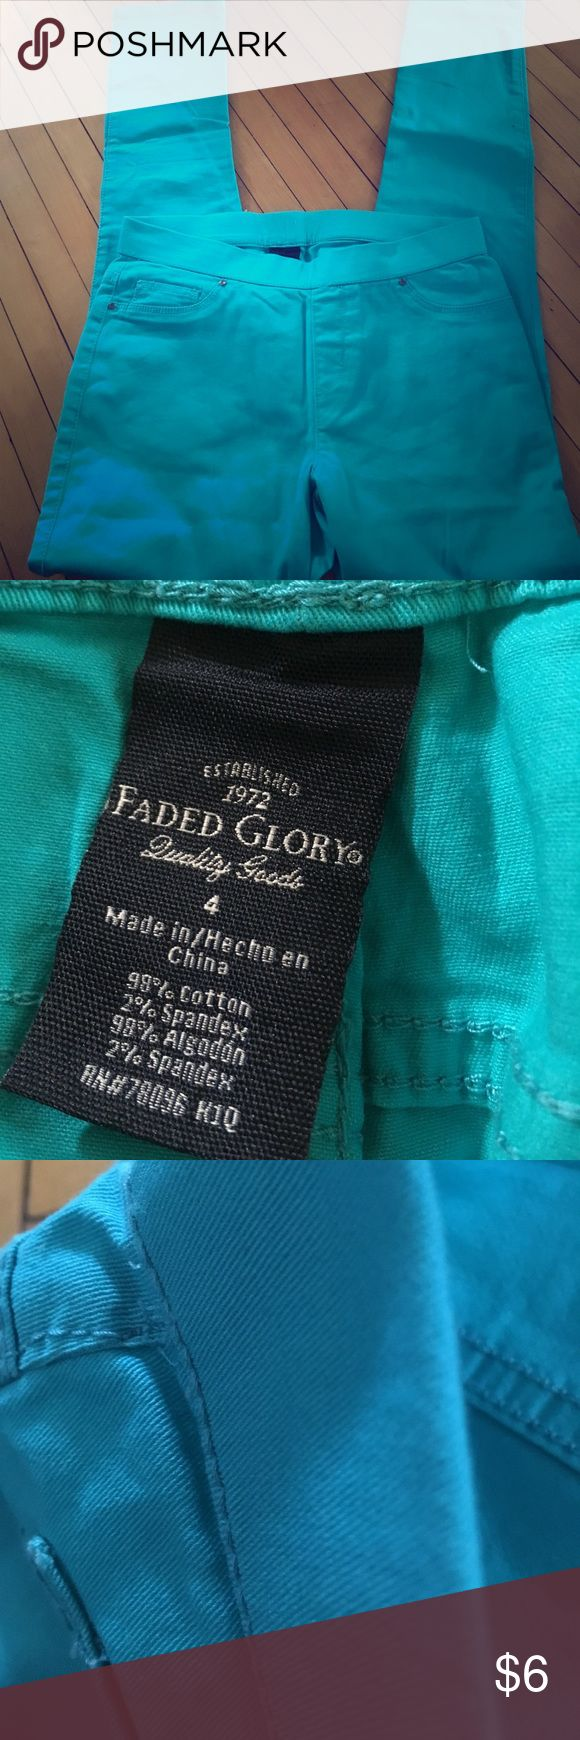 Faded glory women's skinny pants size 4 Blue/blue green/teal colored size for women's faded glory brand professional pants. Skinny leg. 98% cotton 2% spandex made in China Faded Glory Pants